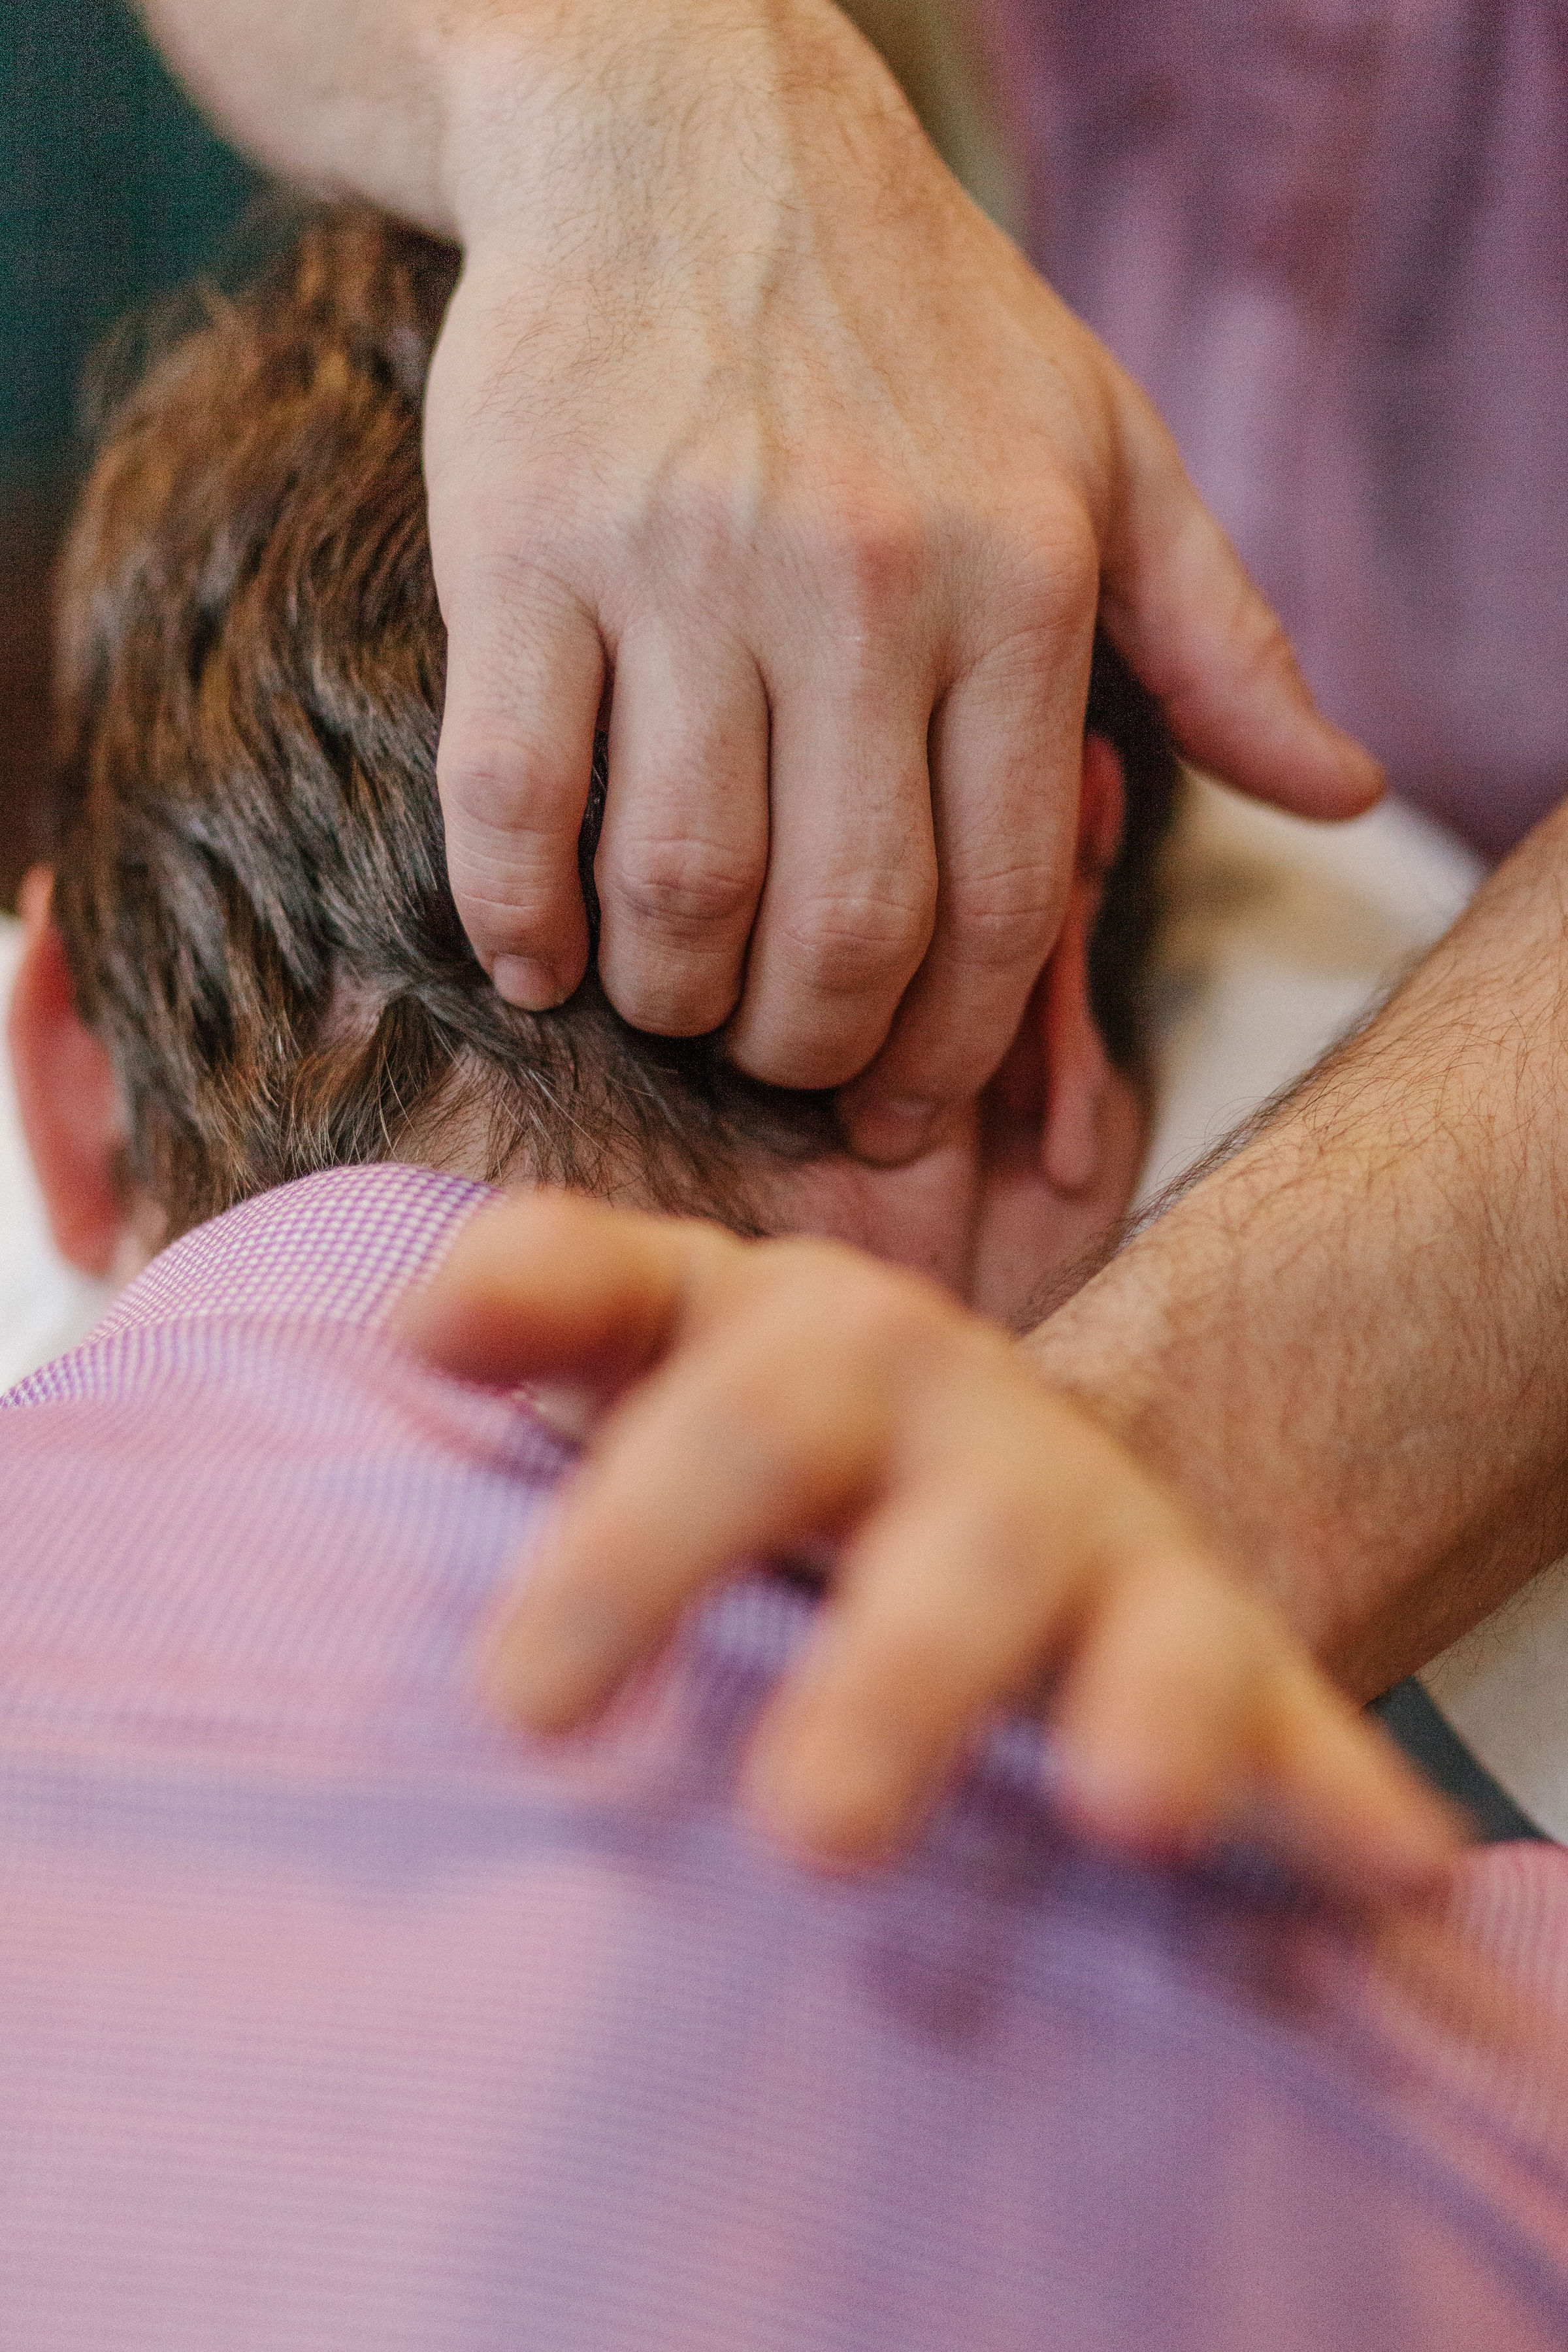 The Backstop Seated Massage located on the second level of Thornes Marketplace in Northampton, MA. Northampton Massage. Offering seated massage, Myofascial Release massage, sports massage, Swedish massage, reflexology, trigger point massage, relaxation massage. Feel rejuvenated today! Stop in, sit down and relax.